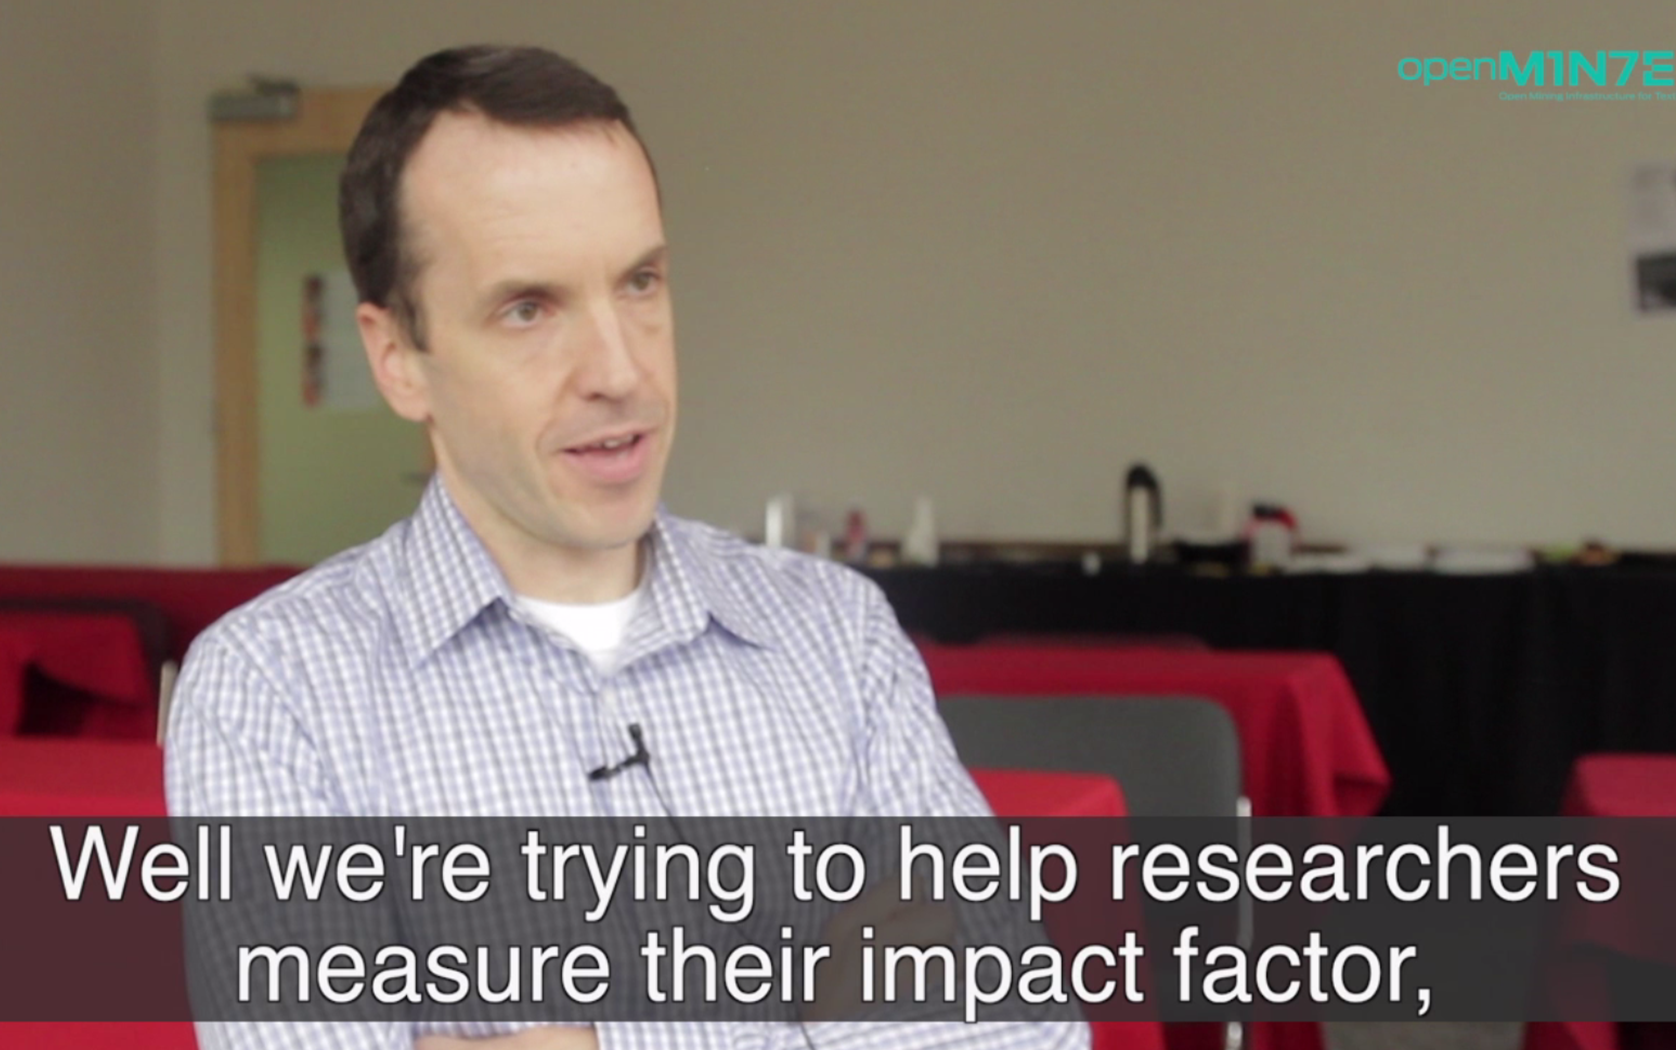 A two-fold approach to measuring impact